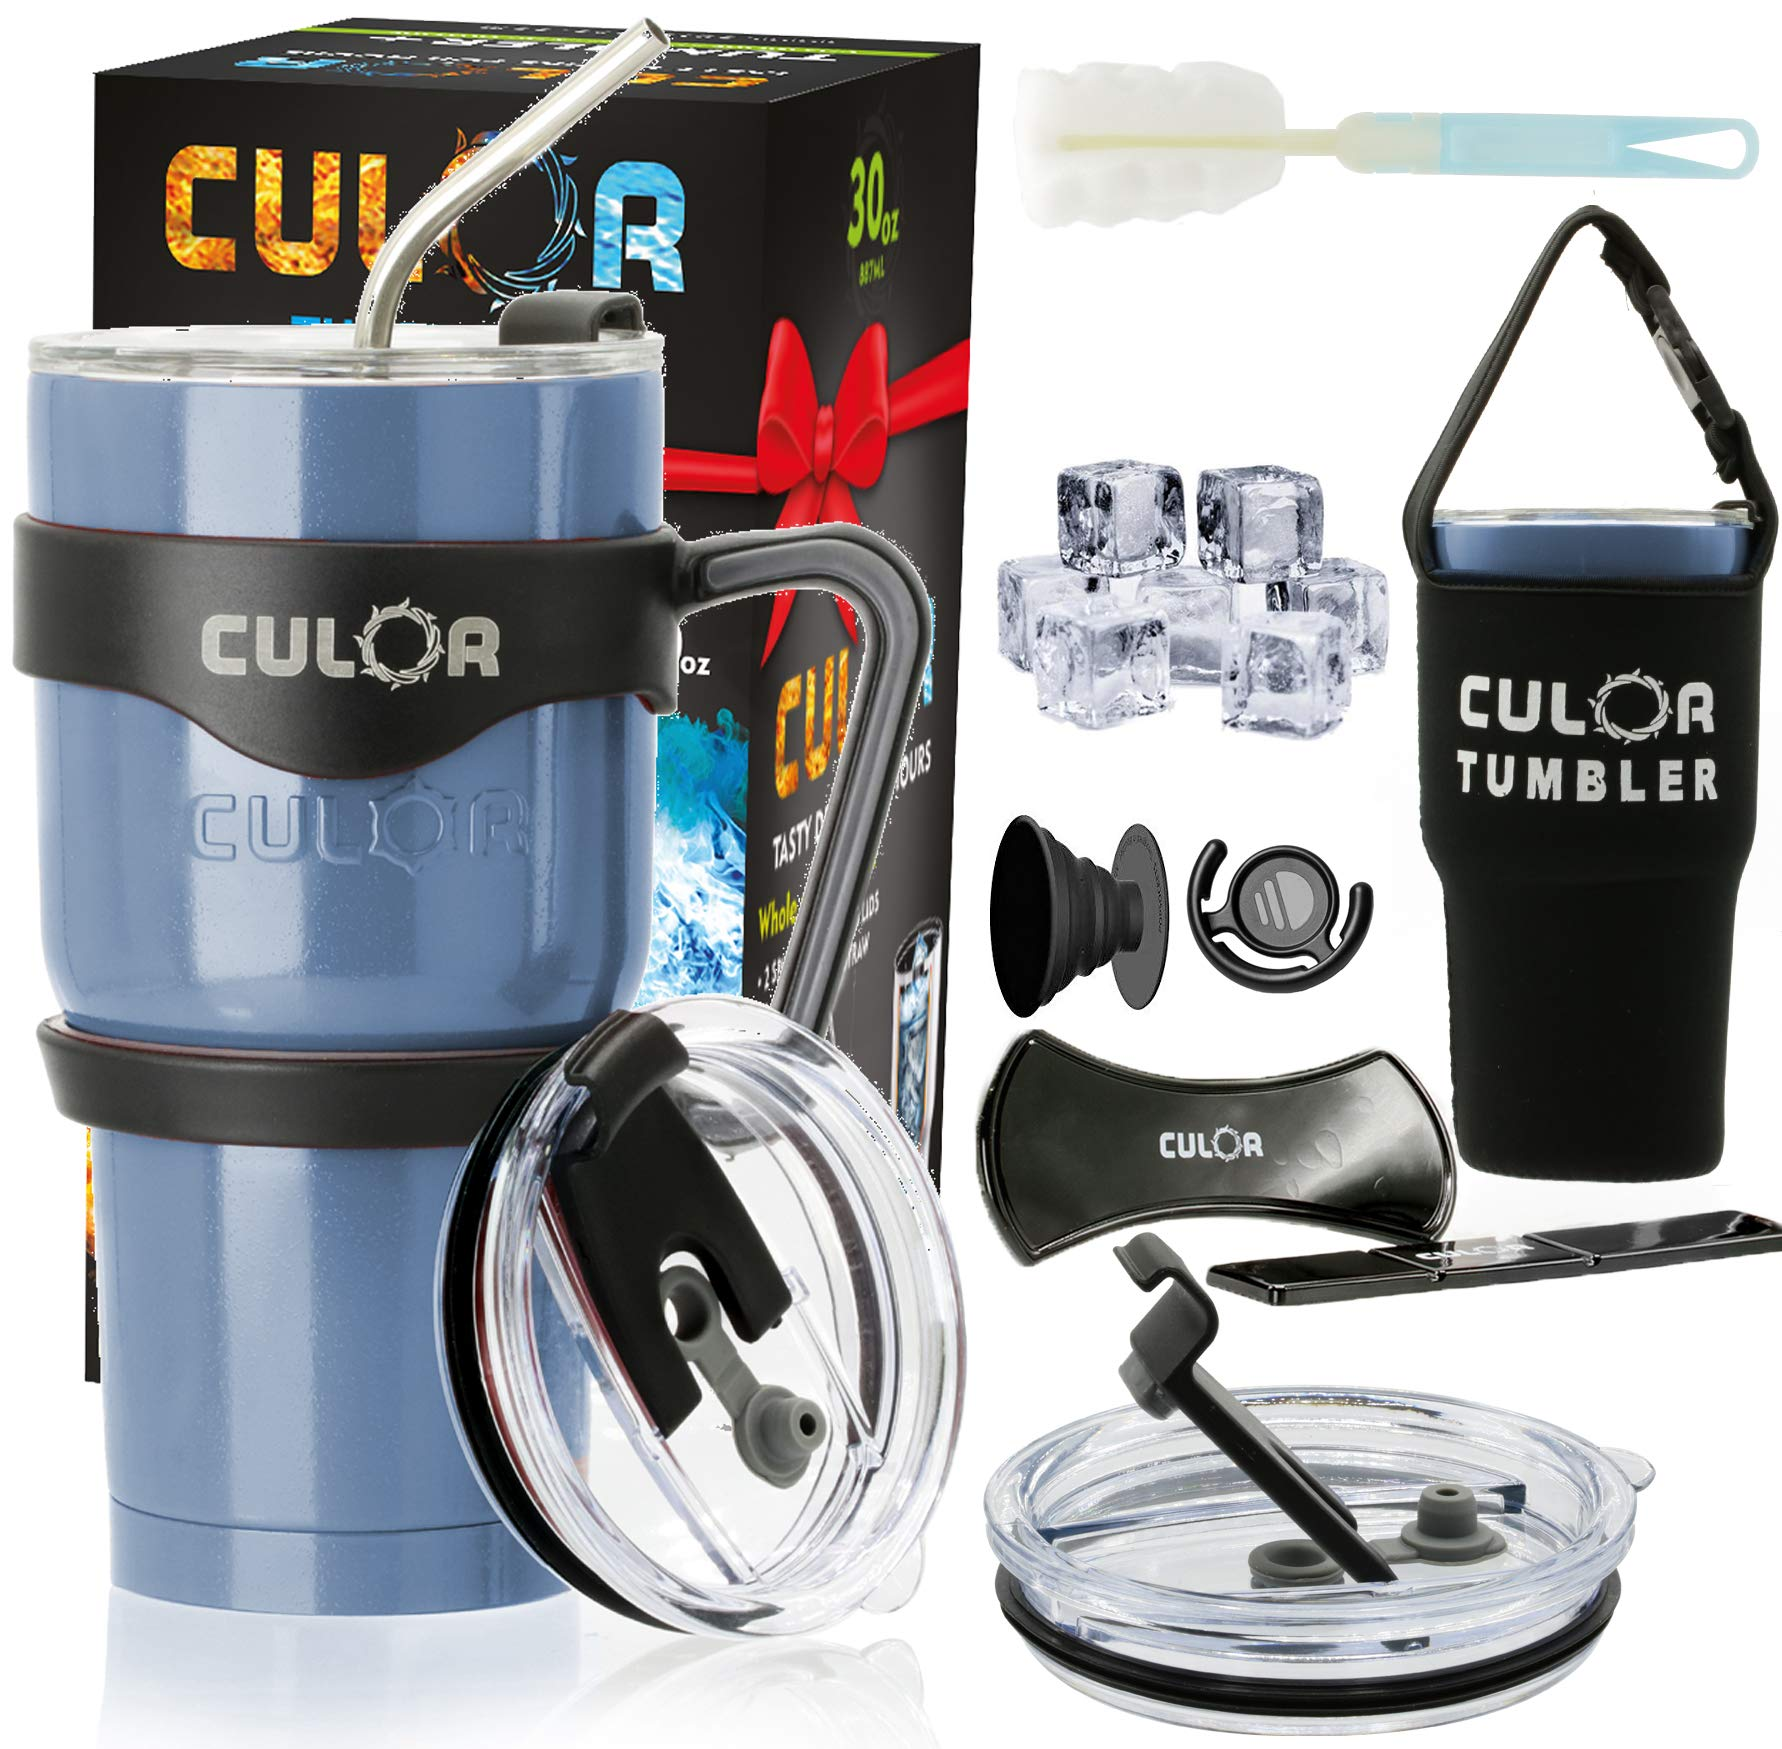 CULOR Stainless Steel Tumbler with Lid and Straw - Double Walled 30 Ounce Blue Arctic Cup, 15 Accessories - INCLUDES WINTER SET